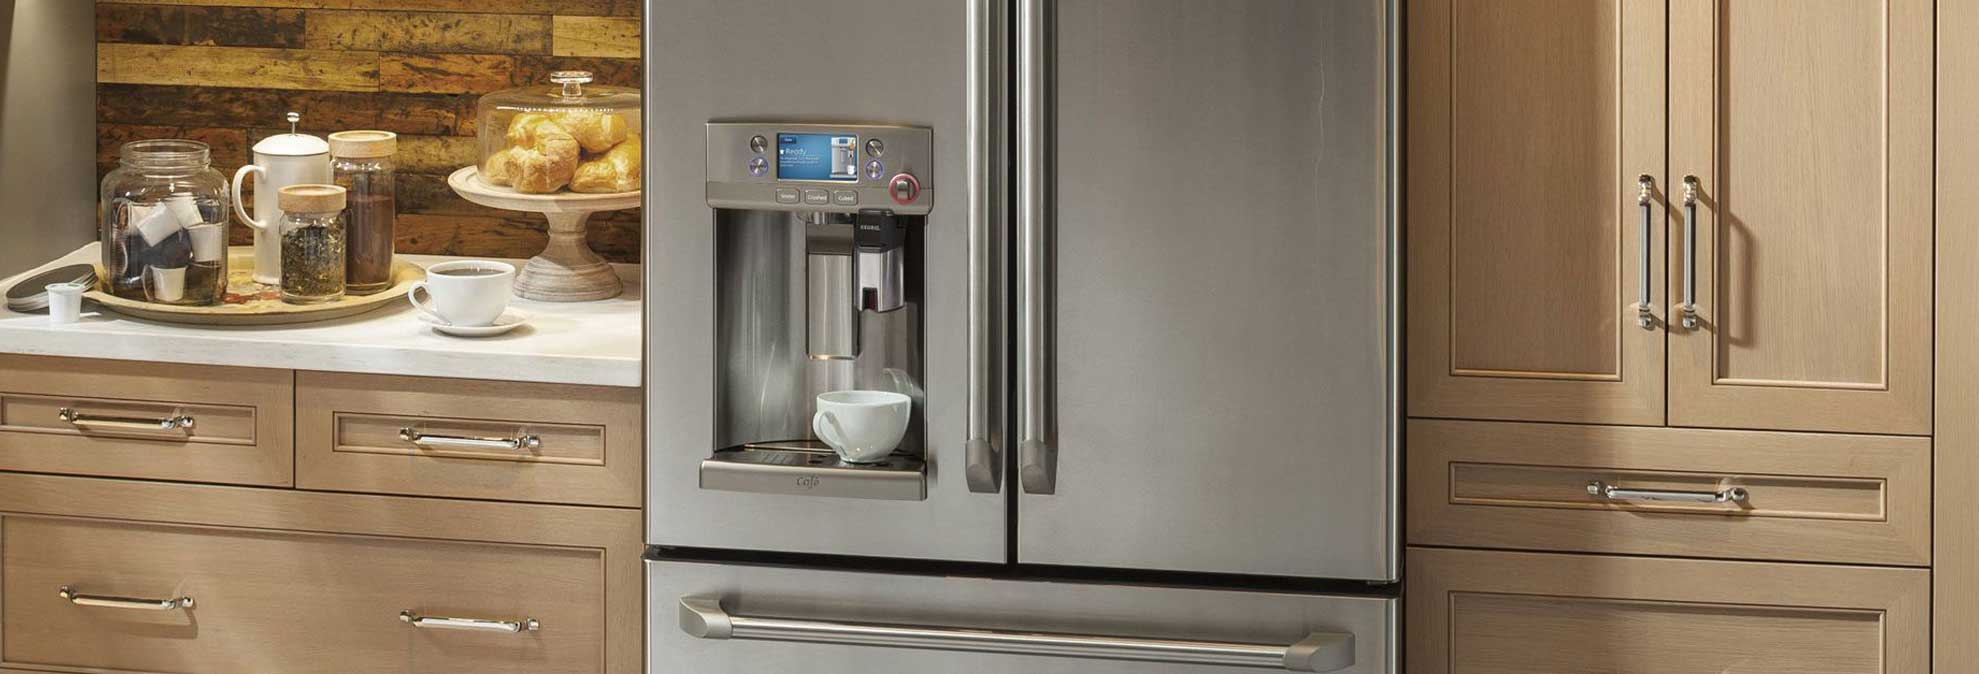 refrigerator counter has that refrigerators wall countertops custom pin depth double and panels oven countertop